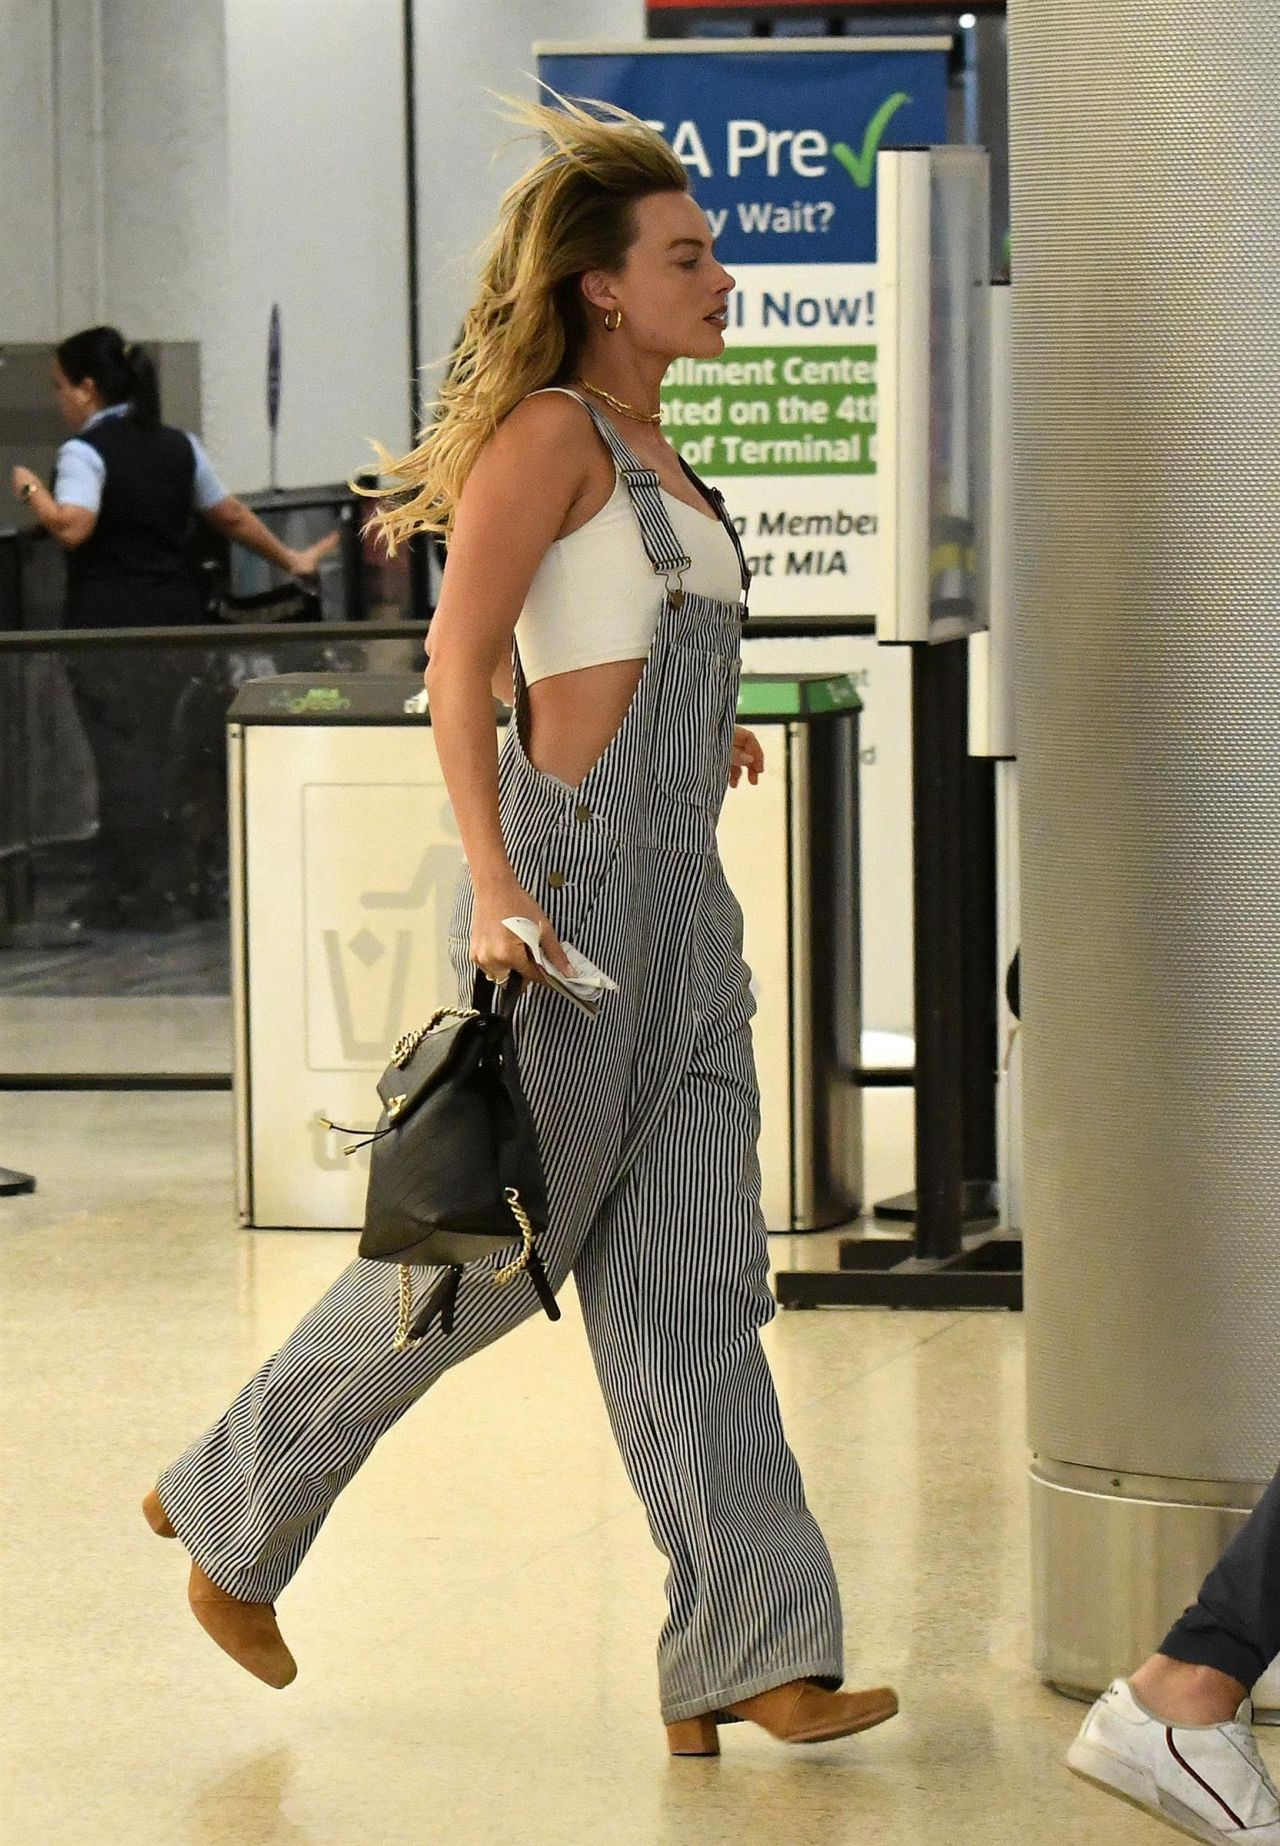 Margot Robbie Miami Airport 04 27 2019